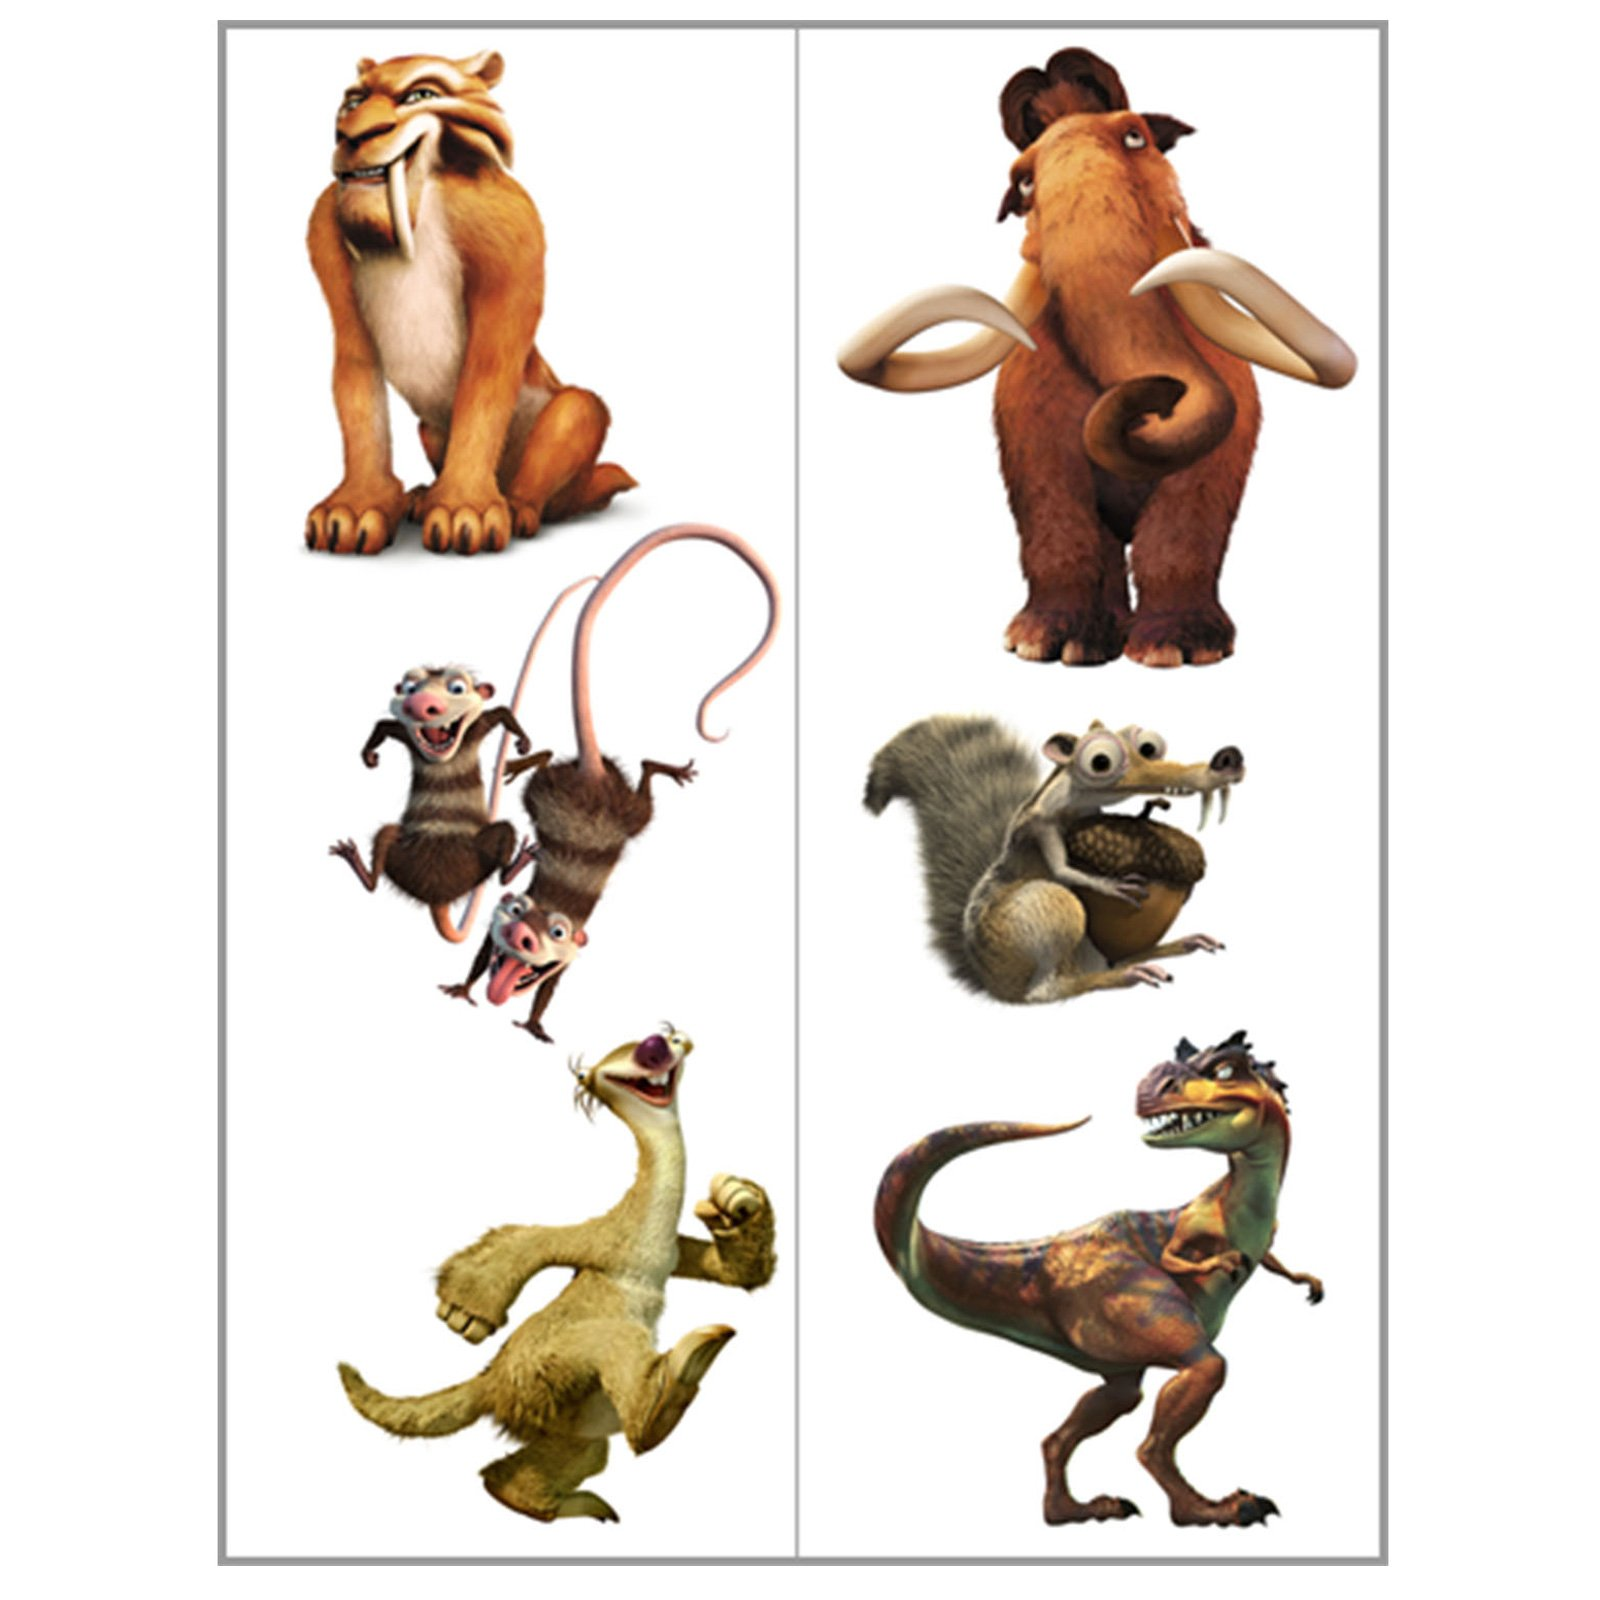 Ice Age 3 Tattoos (2 count)